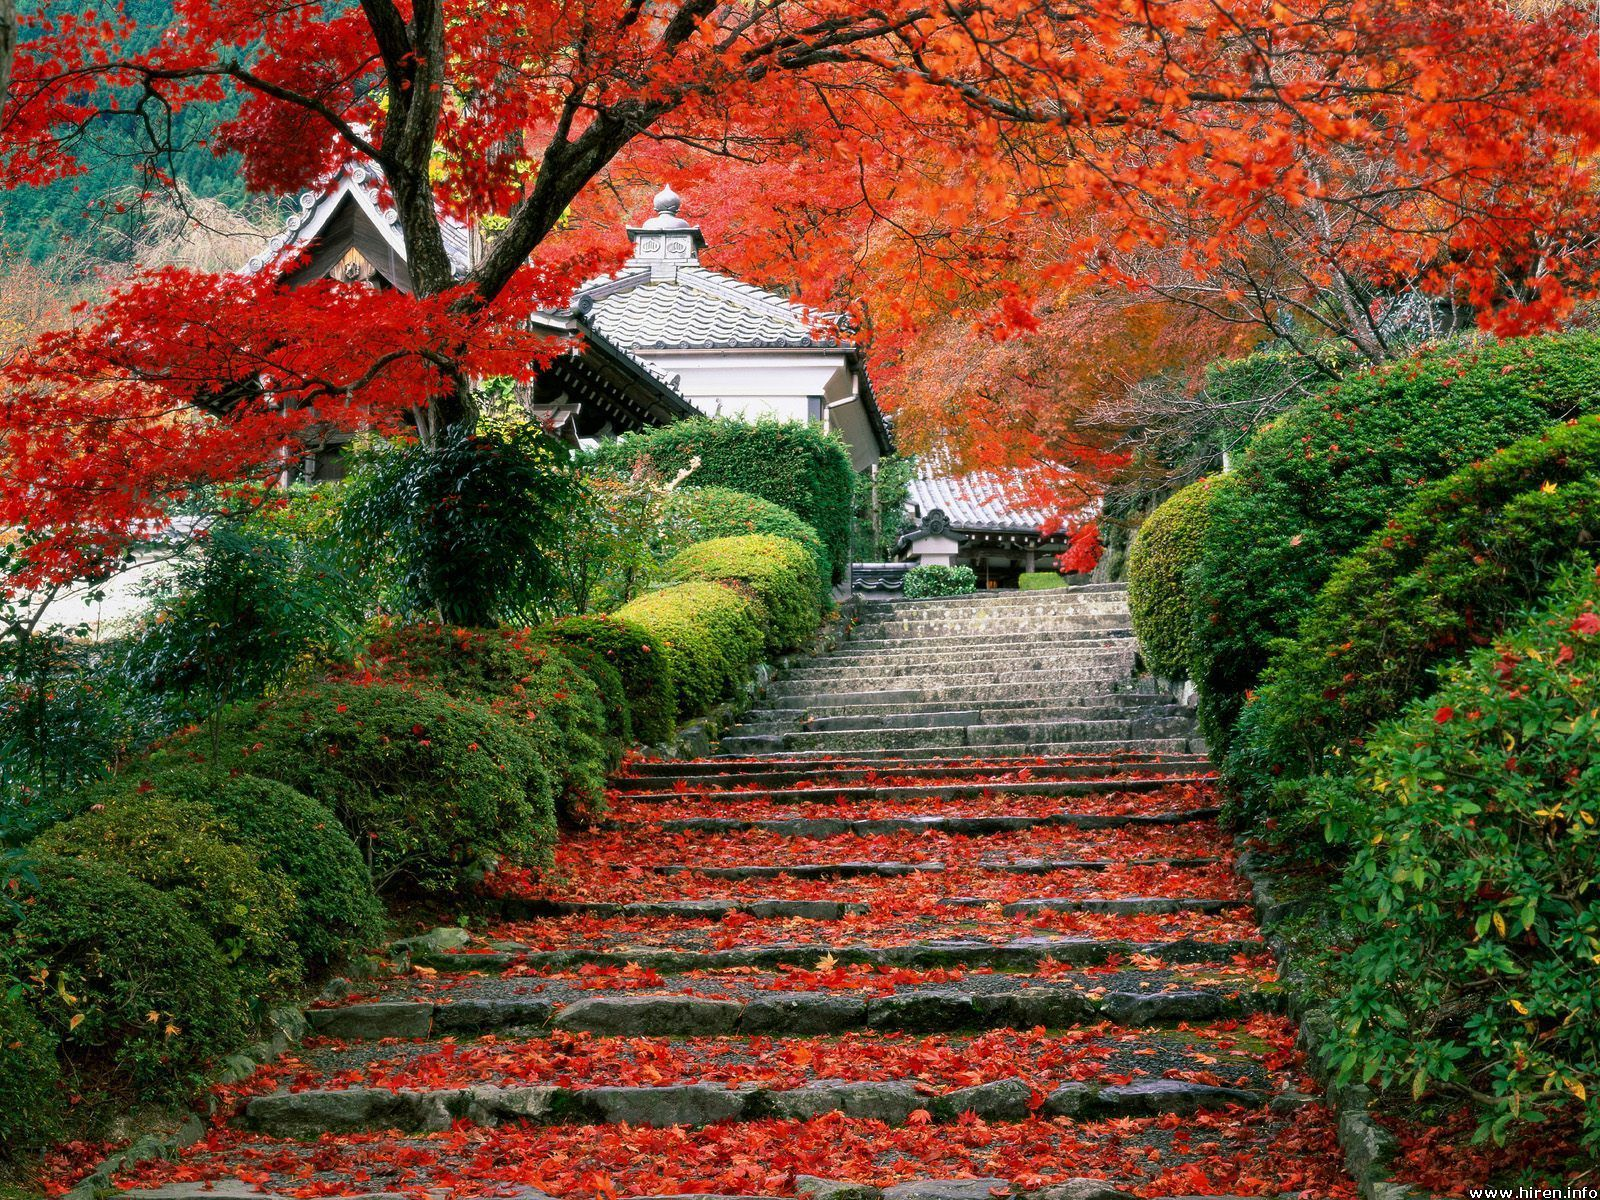 Beautiful Japan Photo in addition 7 Clever Retaining Wall Ideas further 65332 Enclosed Covered Patio Ideas Patio Craftsman With Modern Landscape Modern Fireplace Modern Landscaping together with Stupendous Outdoor Wall Fountains Clearance Decorating Ideas Gallery In Patio Mediterranean Design Ideas moreover 6 Brilliant Inexpensive b 7706234. on traditional home landscaping ideas